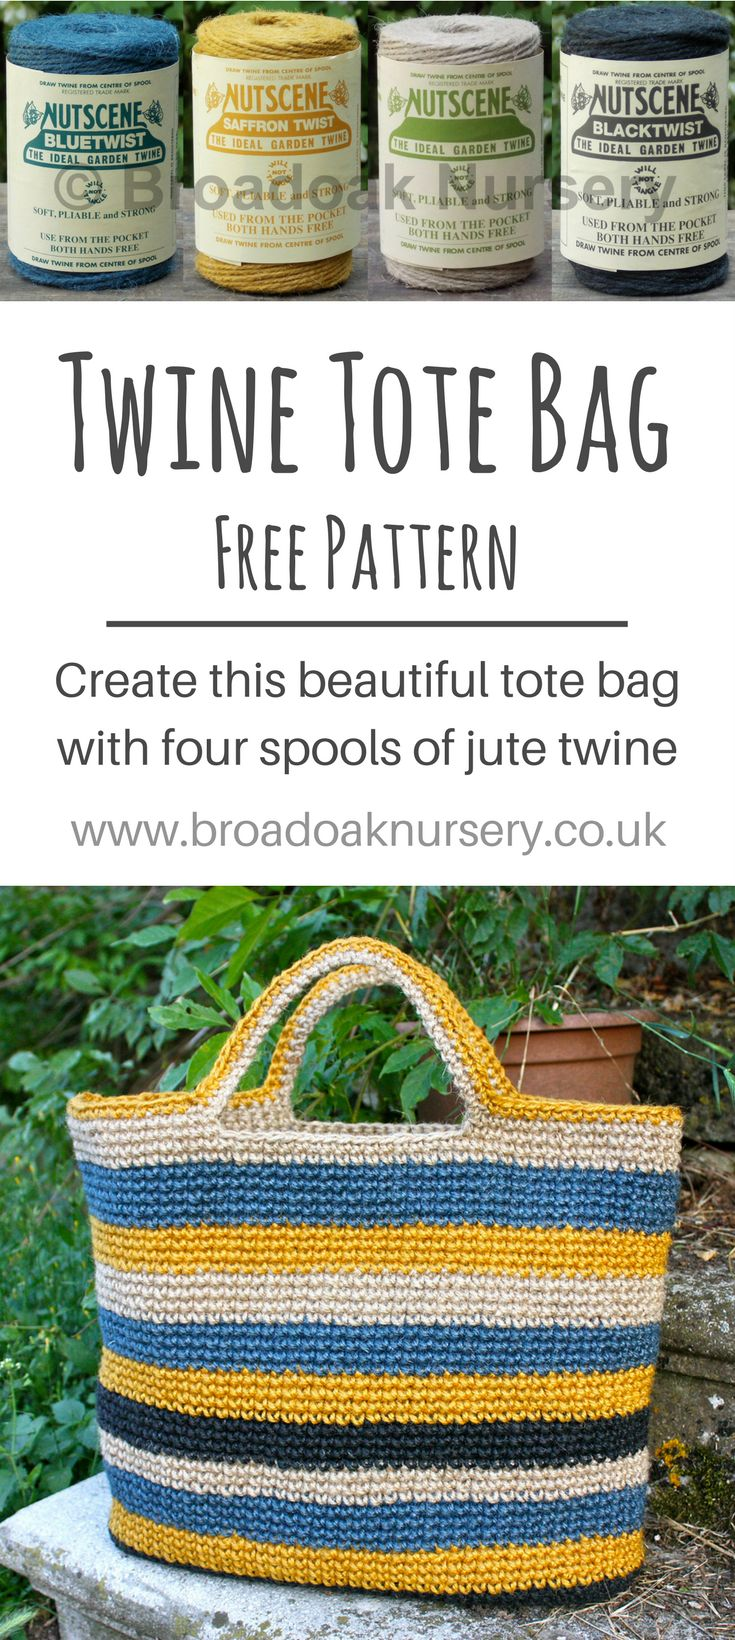 Create this beautiful tote bag with four spools of our jute twine and free crochet pattern...